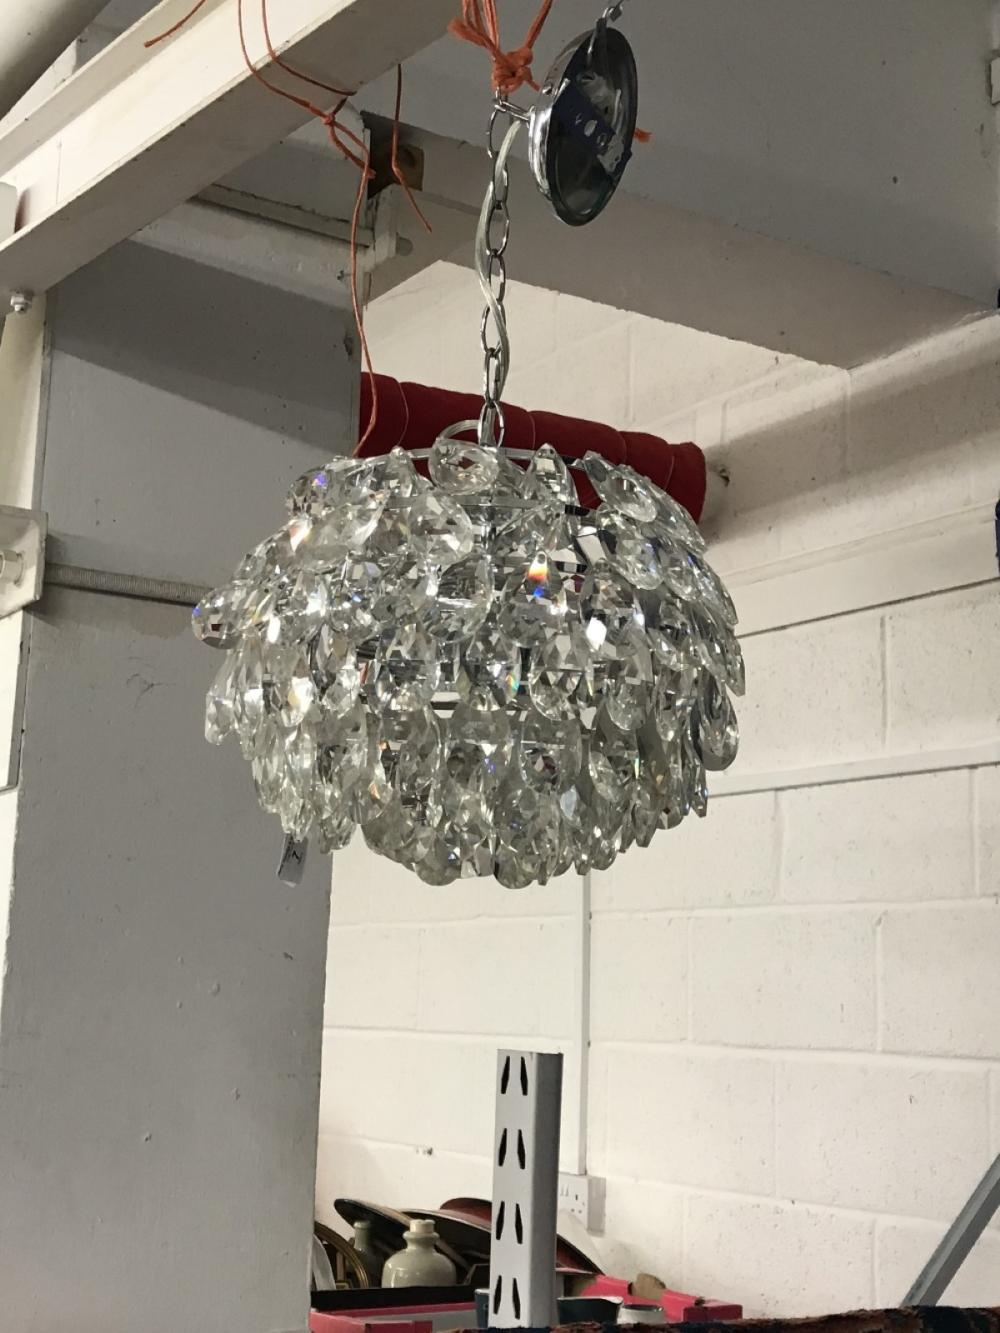 20th cent. Chrome and glass chandelier with diamond cut drops shaping the light to a globe form.